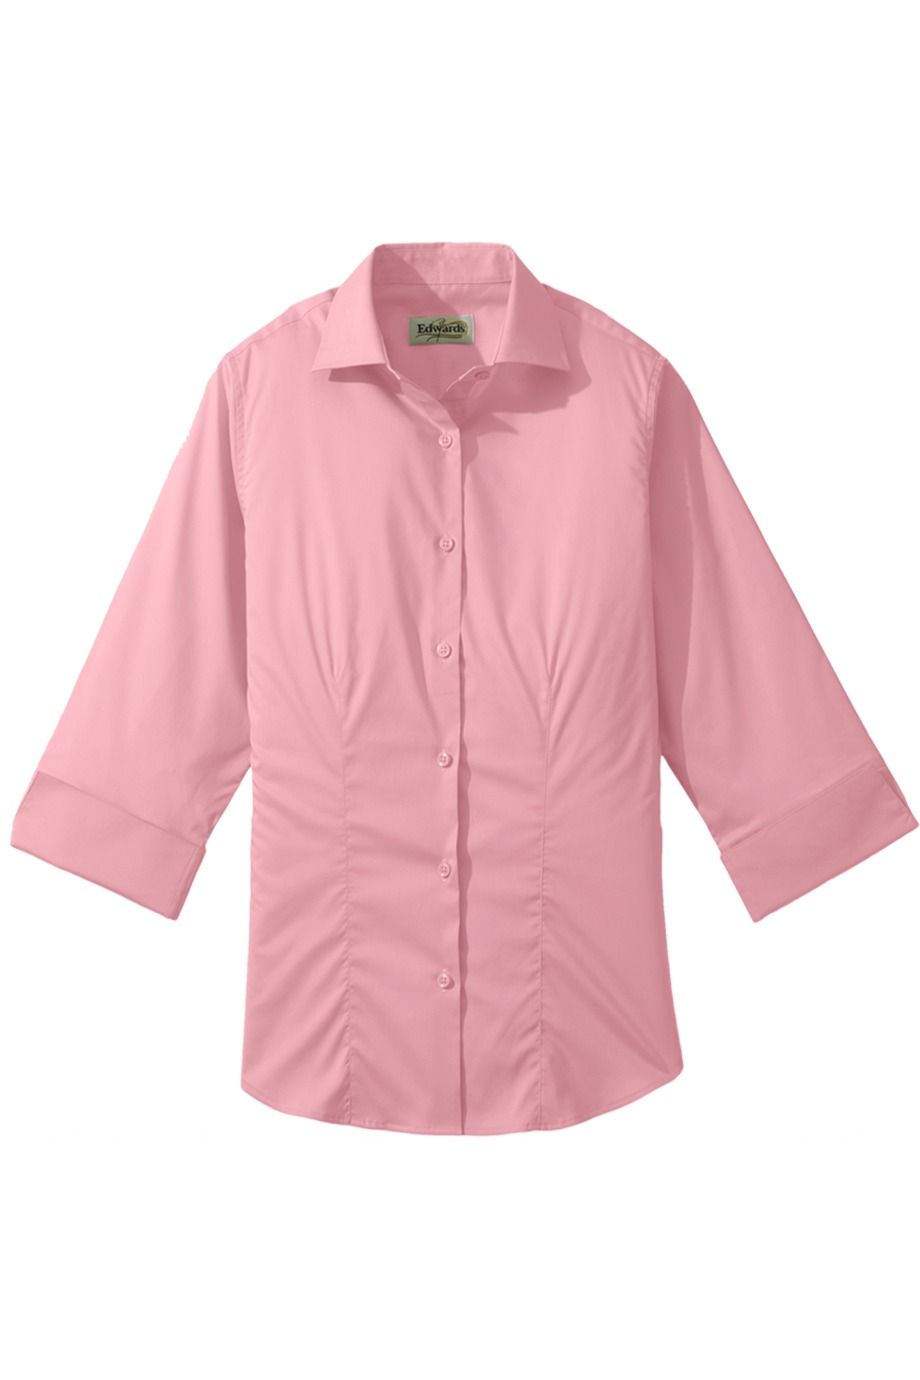 Edwards Garment 5033 - Women's Tailored Three Quarter ...